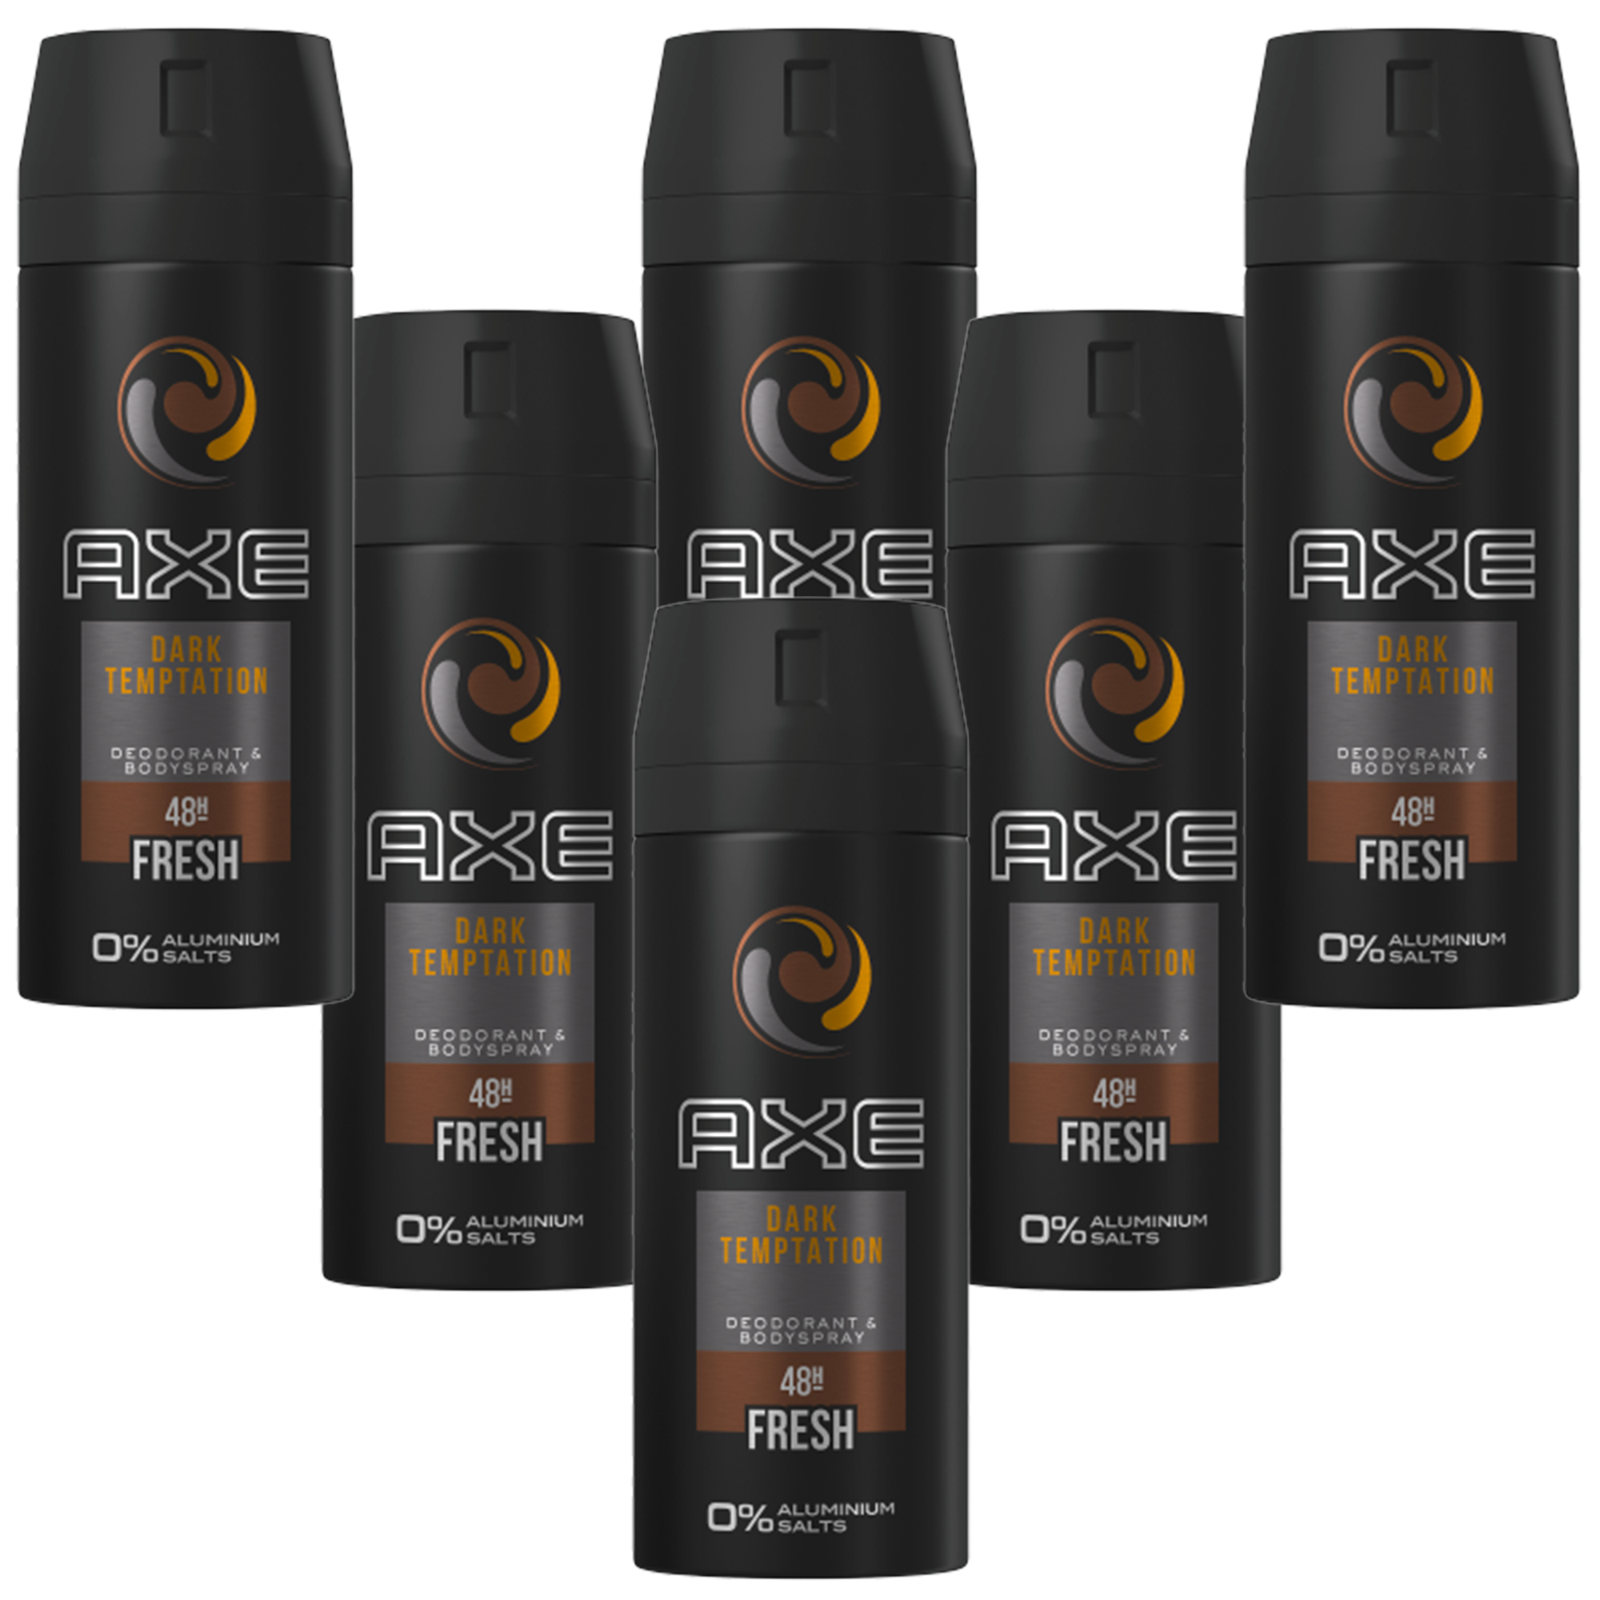 Deo Axe Dark Temptation 6 x 150ml Deospray Deodorant Bodyspray ohne Aluminium